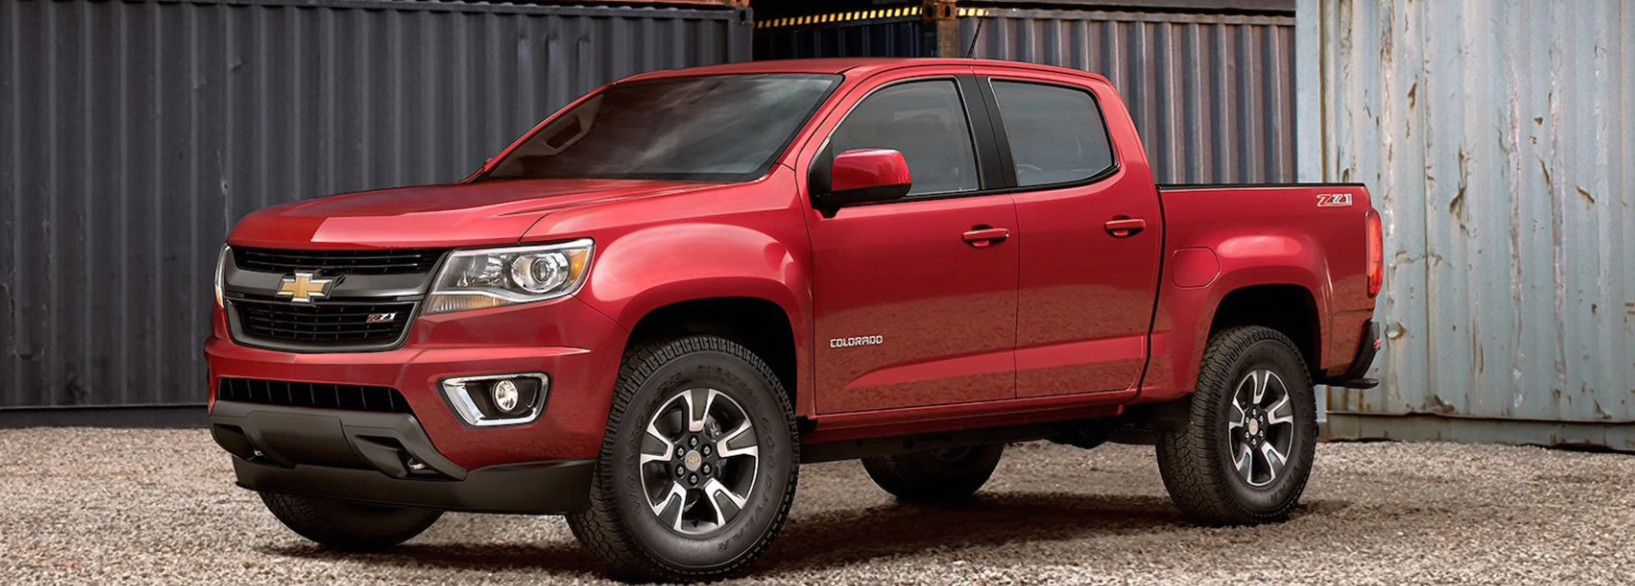 What's New for the 2020 Chevy Colorado?